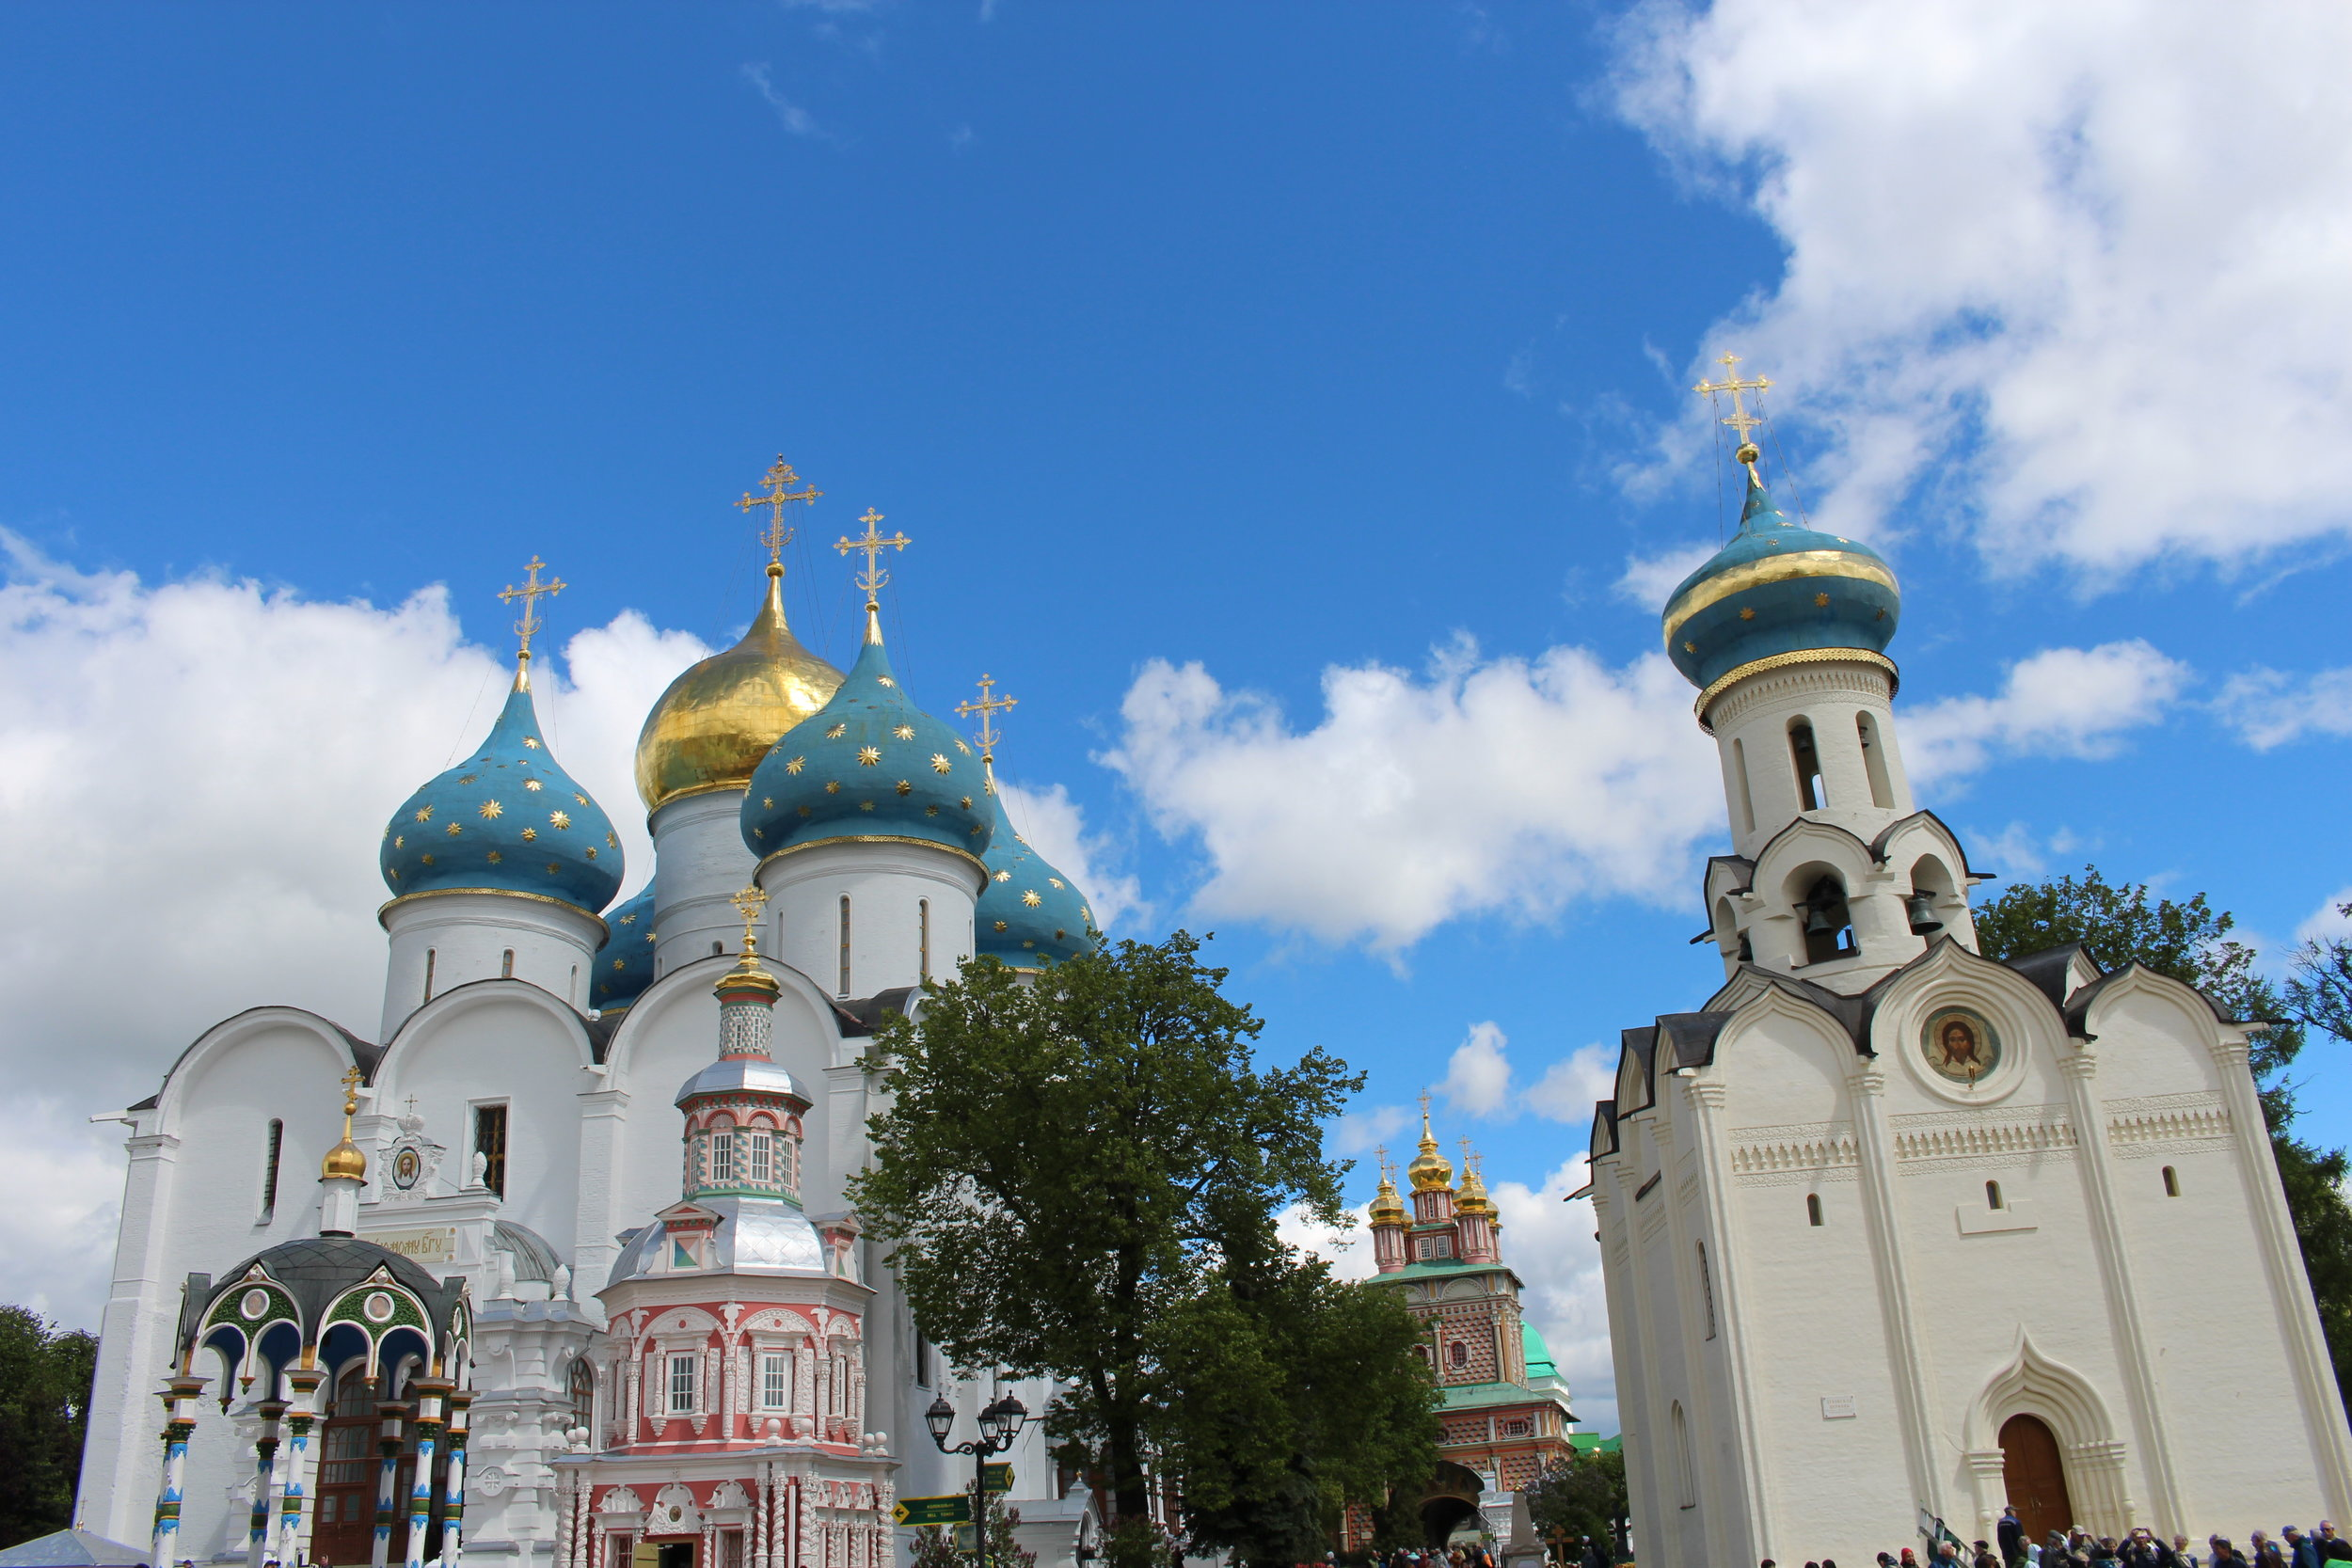 Onion domed churches in Sergiev Posad